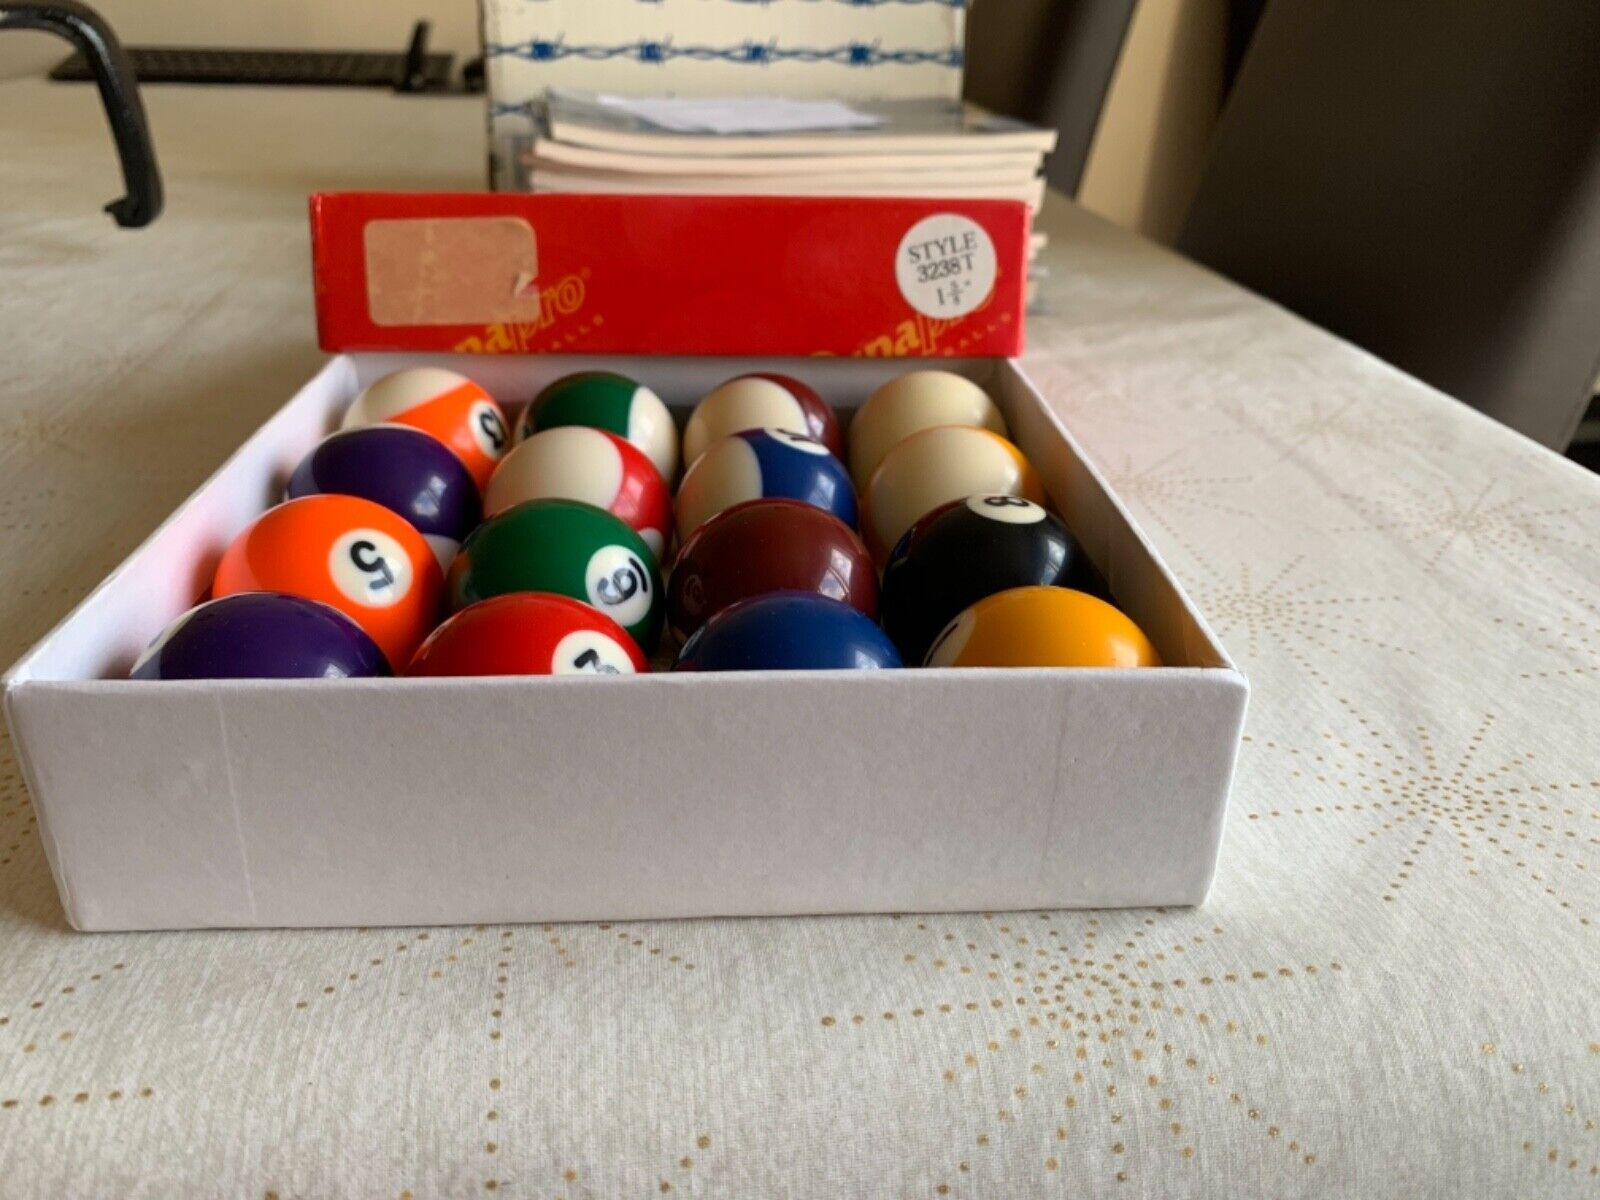 Pool Balls Supapro - Style 3238T - 1 5/8 inch (1